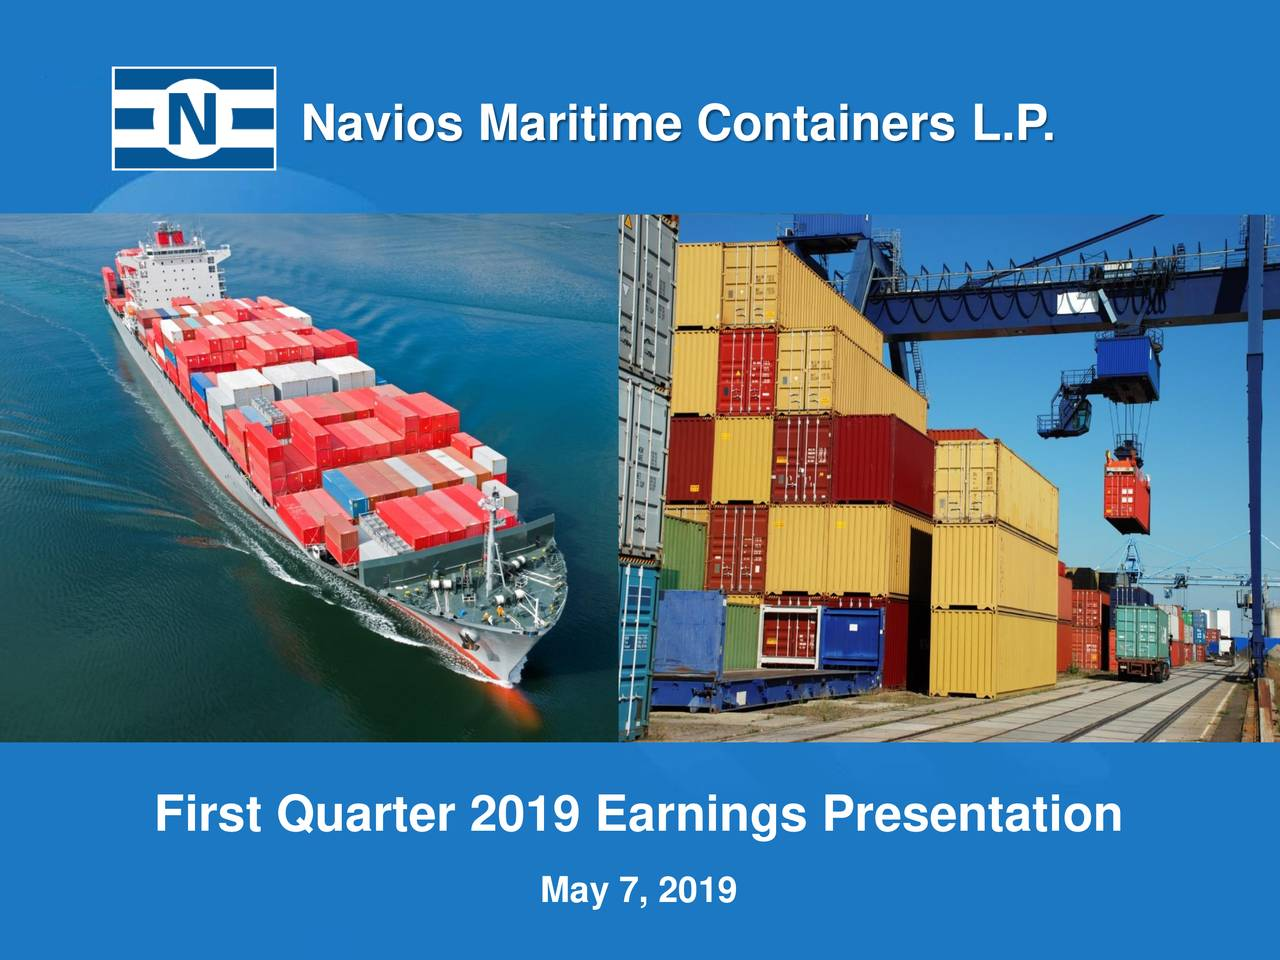 Navios Maritime Containers L.P . Scheme 0,0,0 255,255,255 128,128,128 255,255,255 221,242,250 51,51,153 0,153,153 153,204,0 First Quarter 2019 Earnings Presentation May 7, 2019